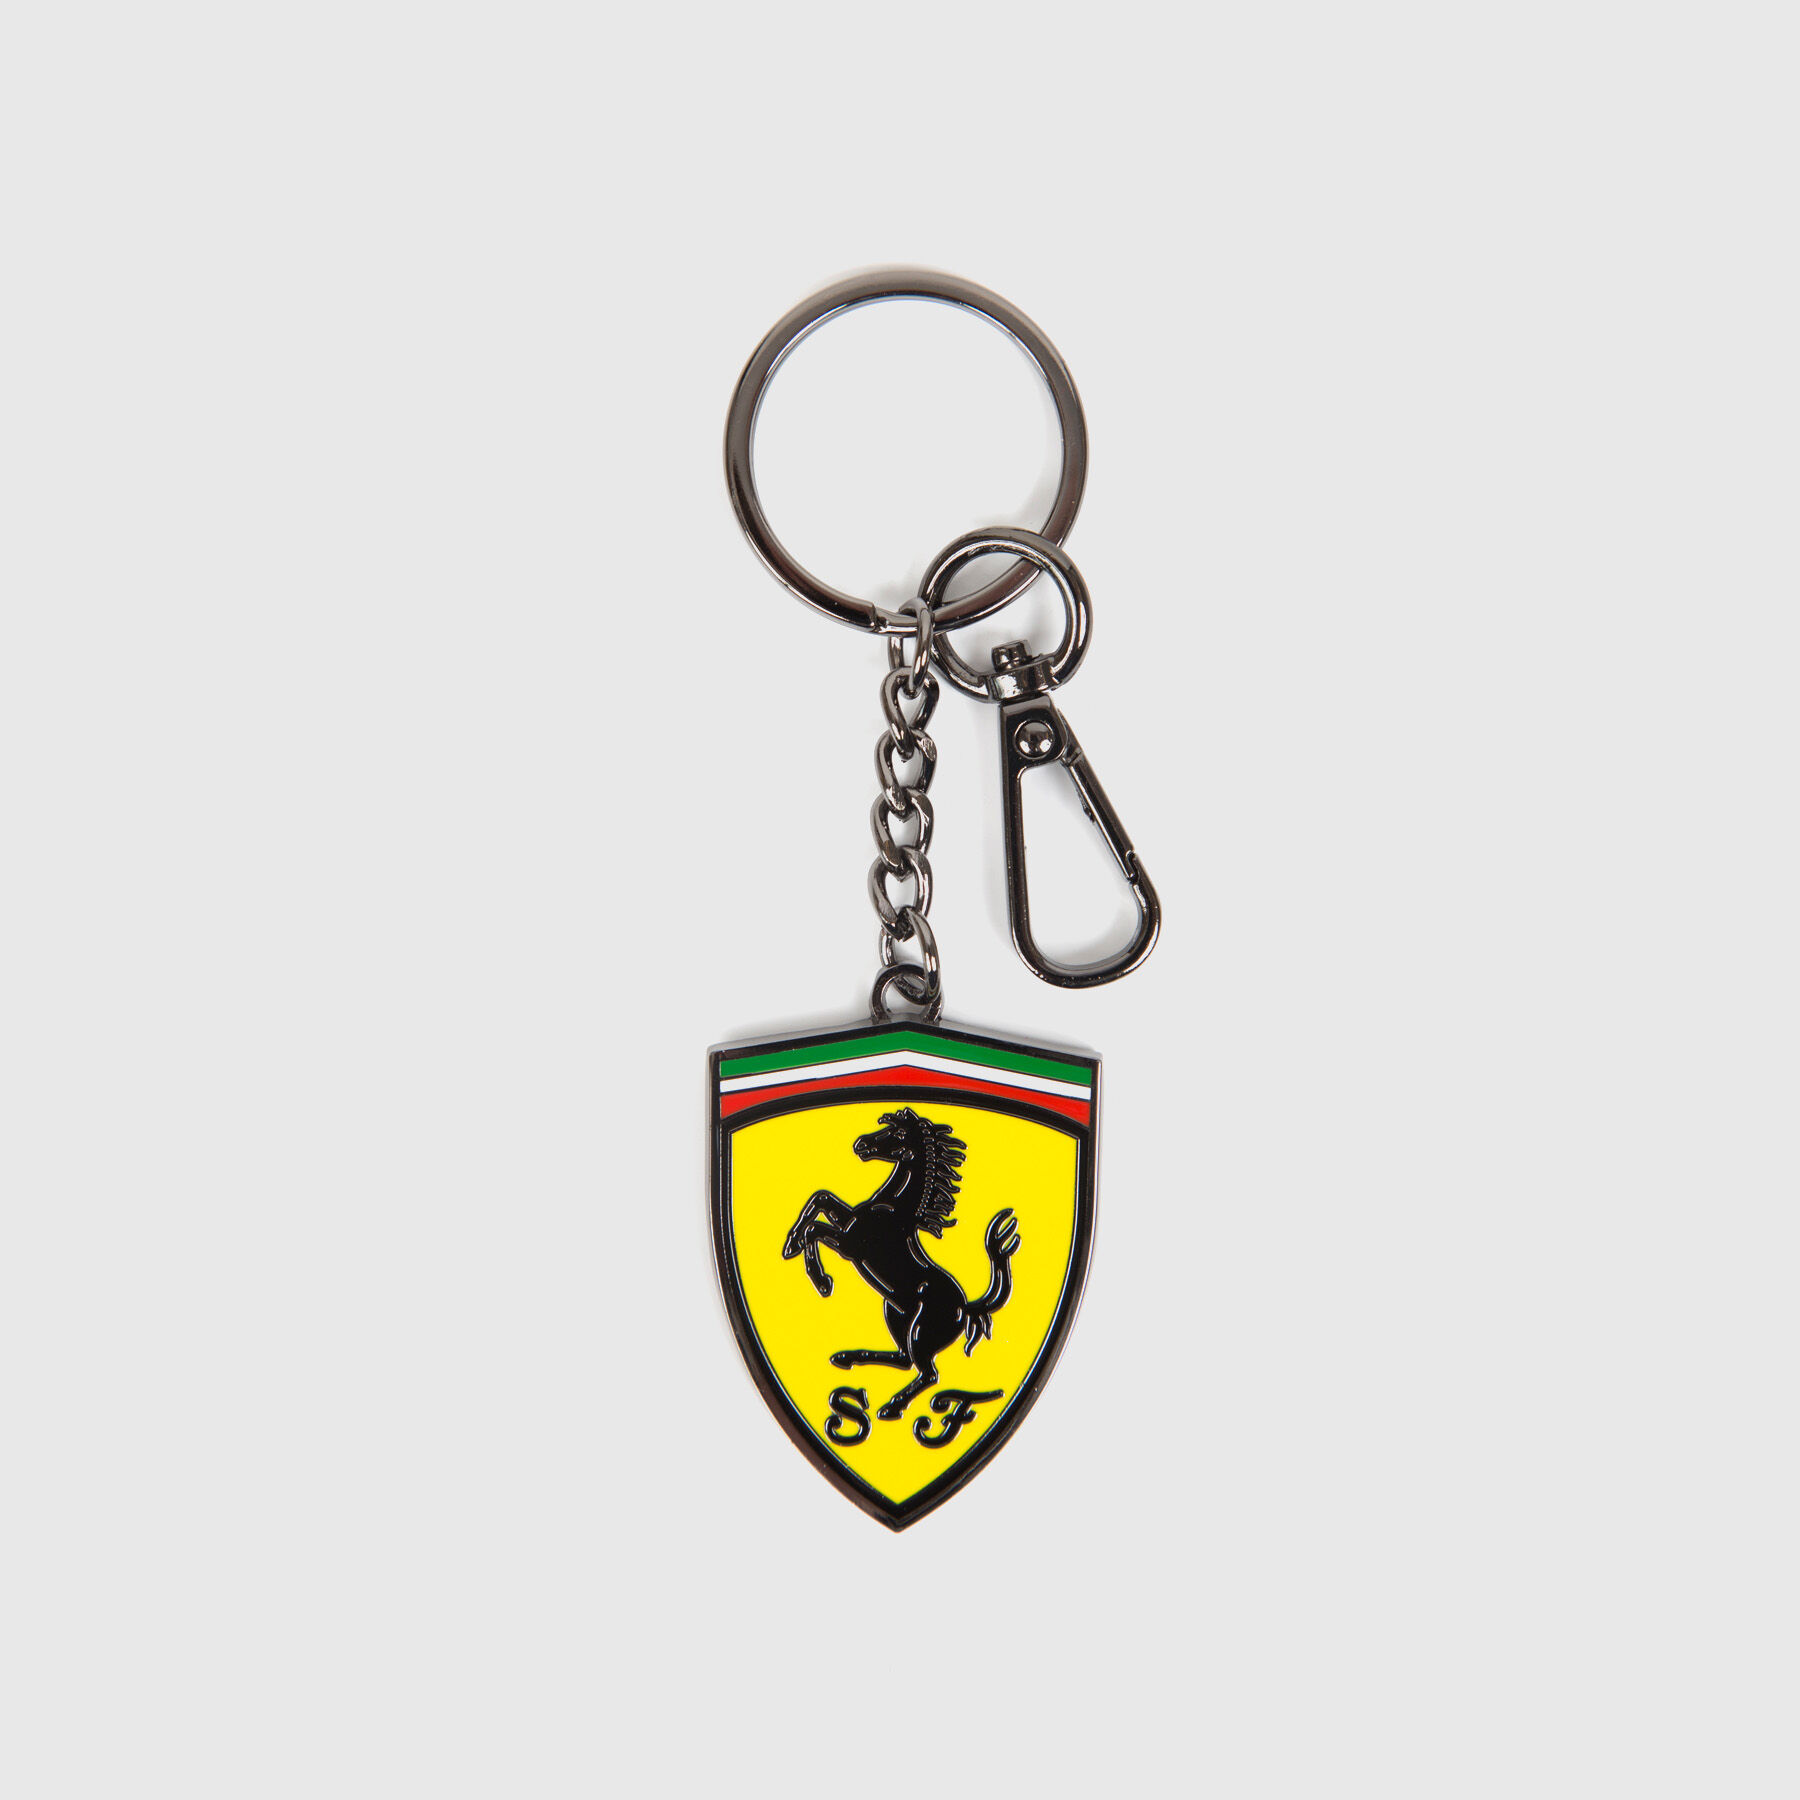 Silver Hooshion Alloy Keychain Metal Keyring Stainless Steel Key Chain for Car Keys for Women and Men Gifts Keychain